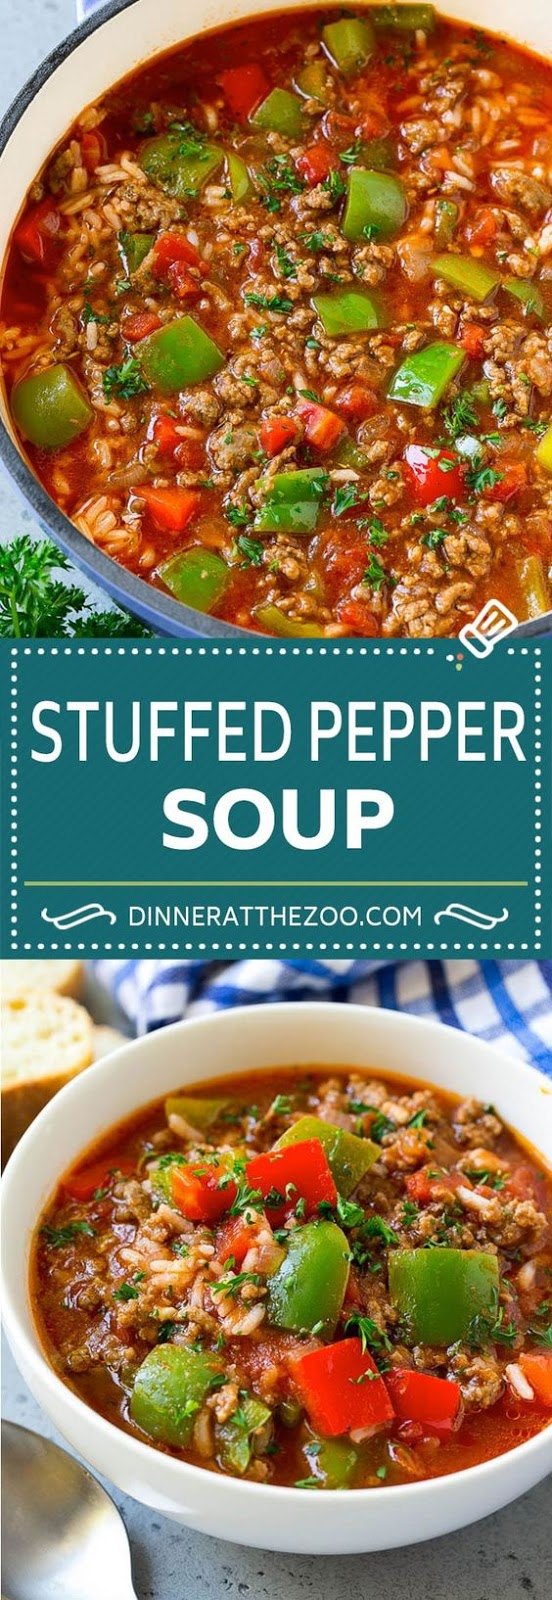 Stuffed Pepper Soup Recipe | Beef and Rice Soup | Stuffed Peppers #peppers #soup #beef #rice #dinner #dinneratthezoo